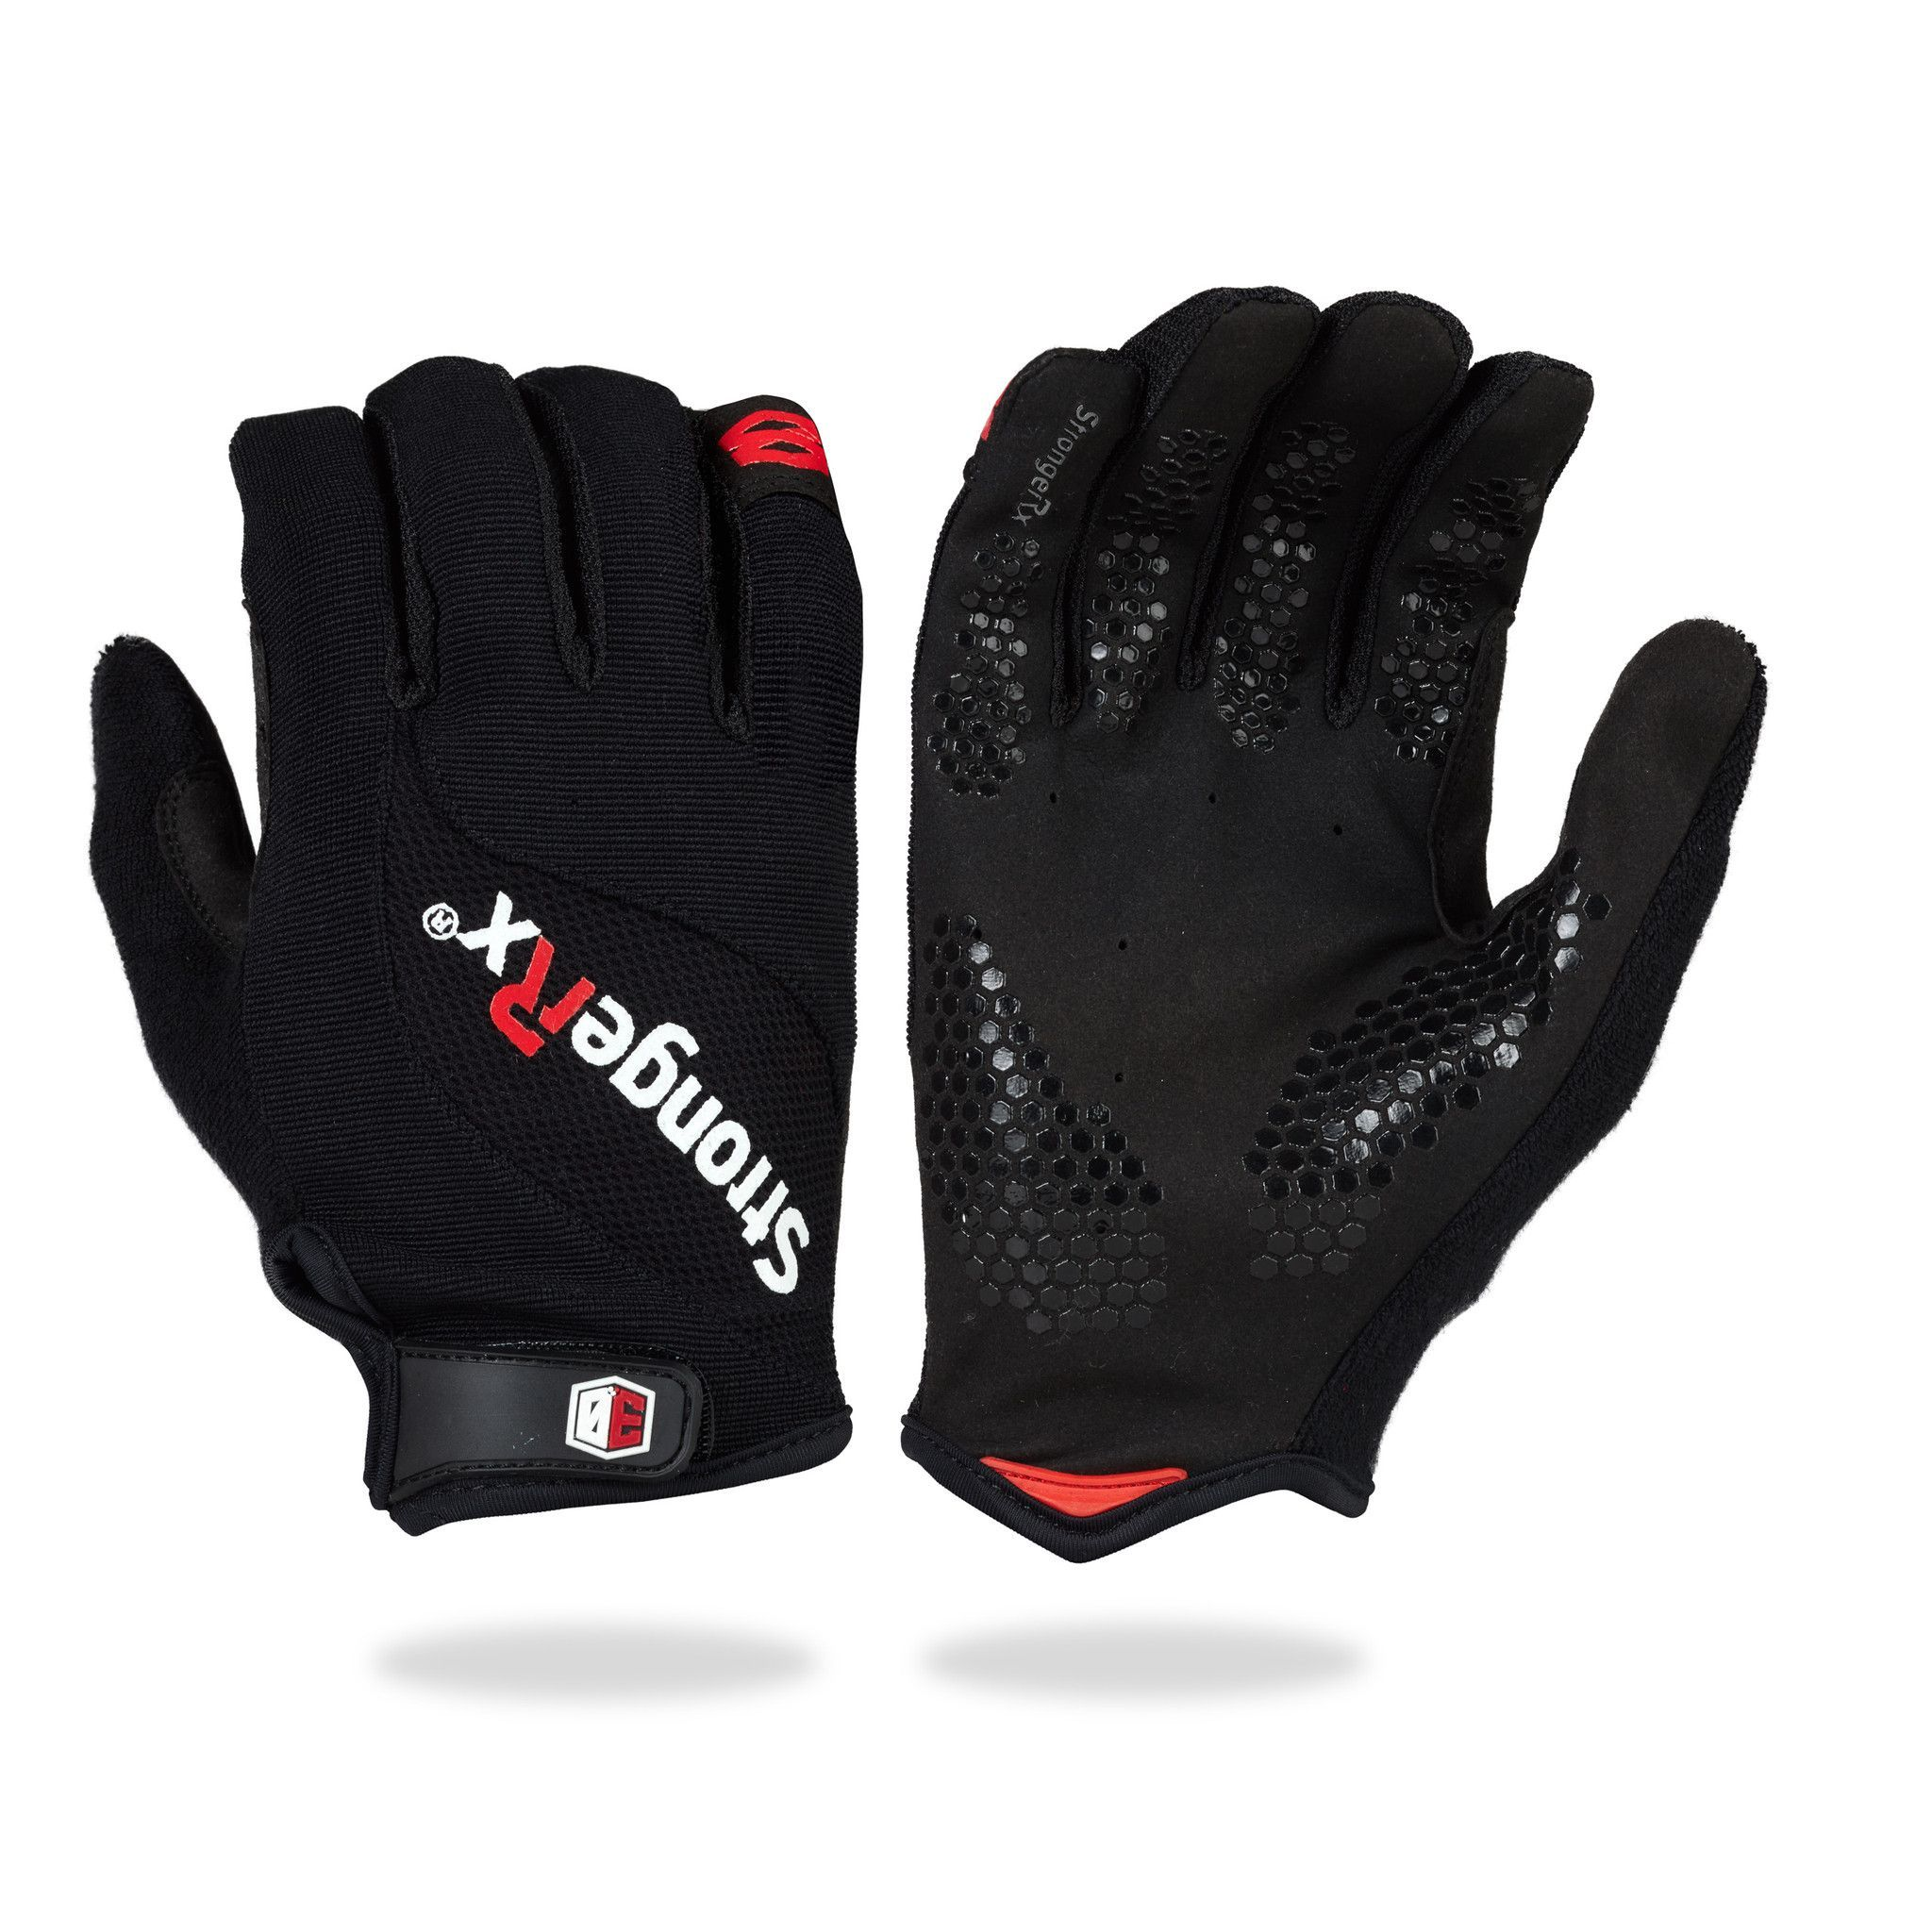 StrongerRx 3.0 WOD Fitness Gloves / Black